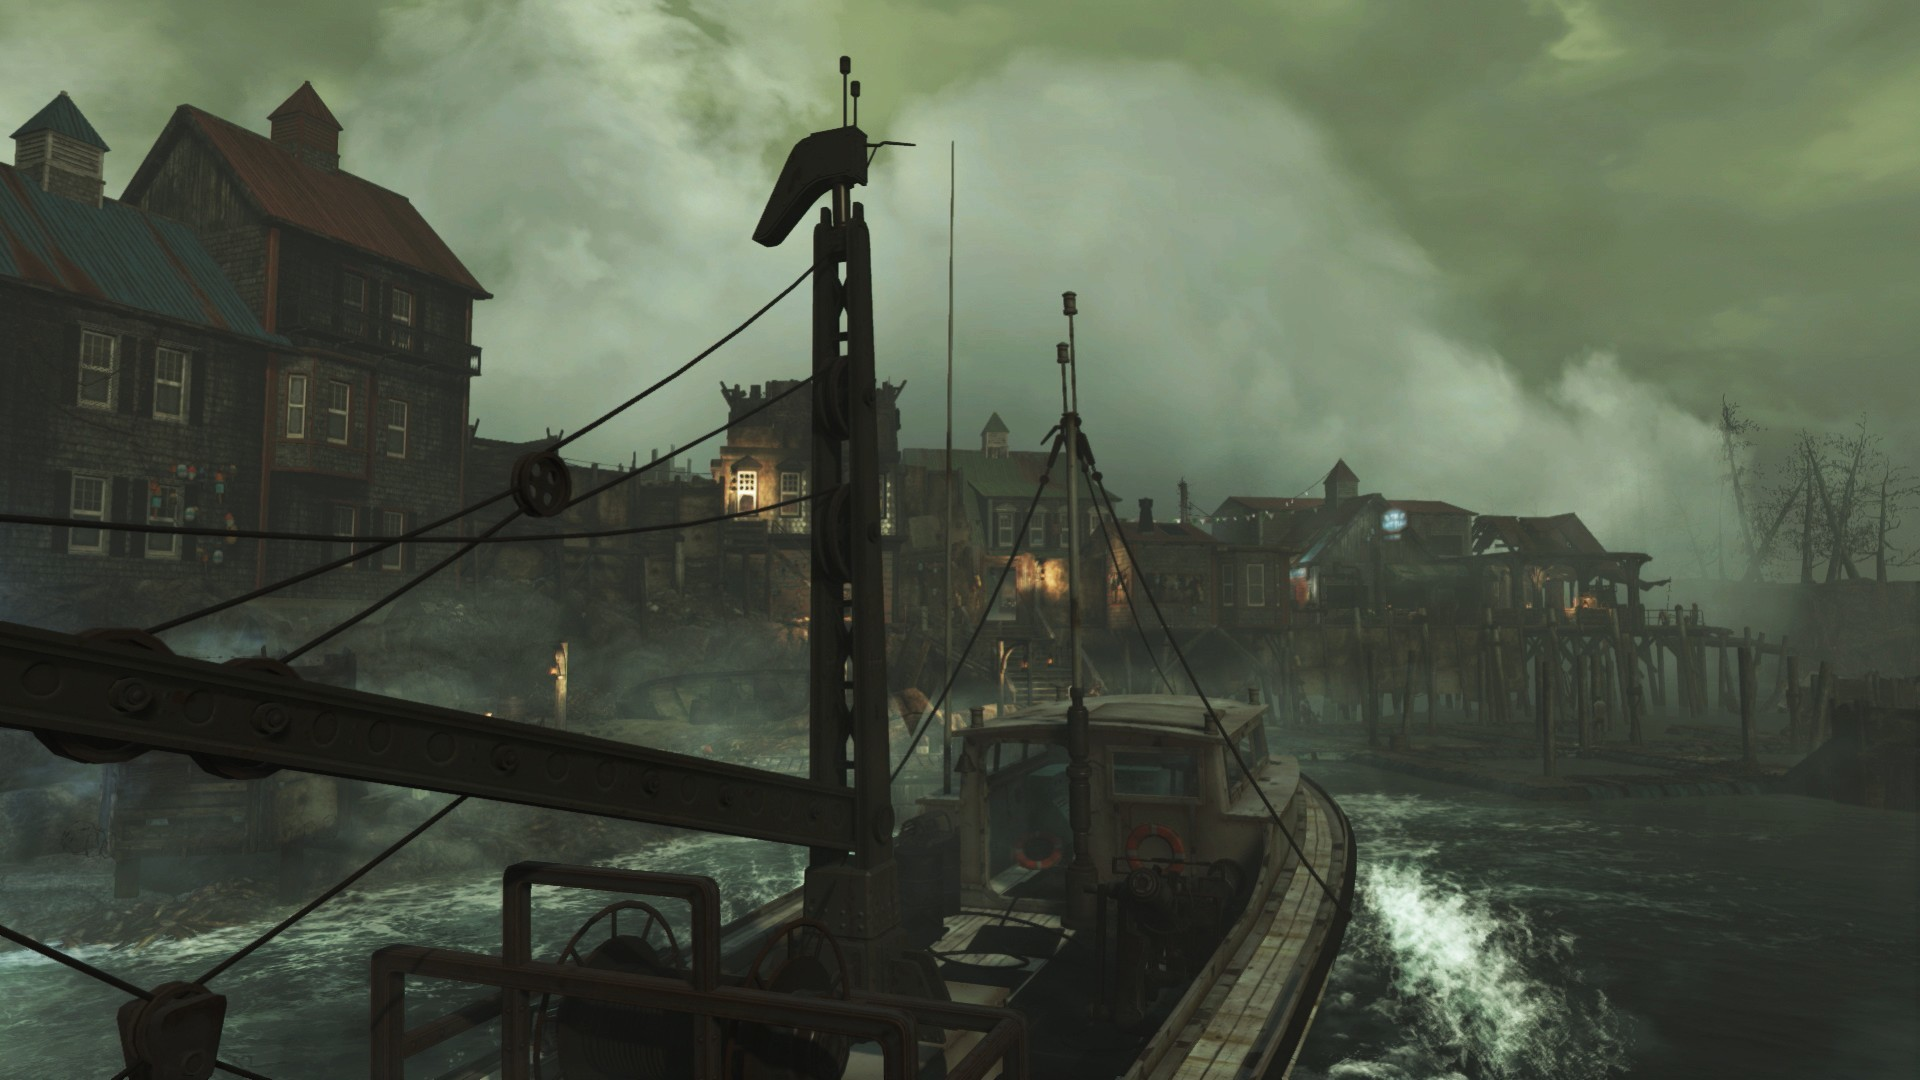 1920x1080 Fallout Wallpapers 1080p Unique Image Fallout4 Farharbor Arrival Fallout  Wiki Of Fallout Wallpapers 1080p Unique Image